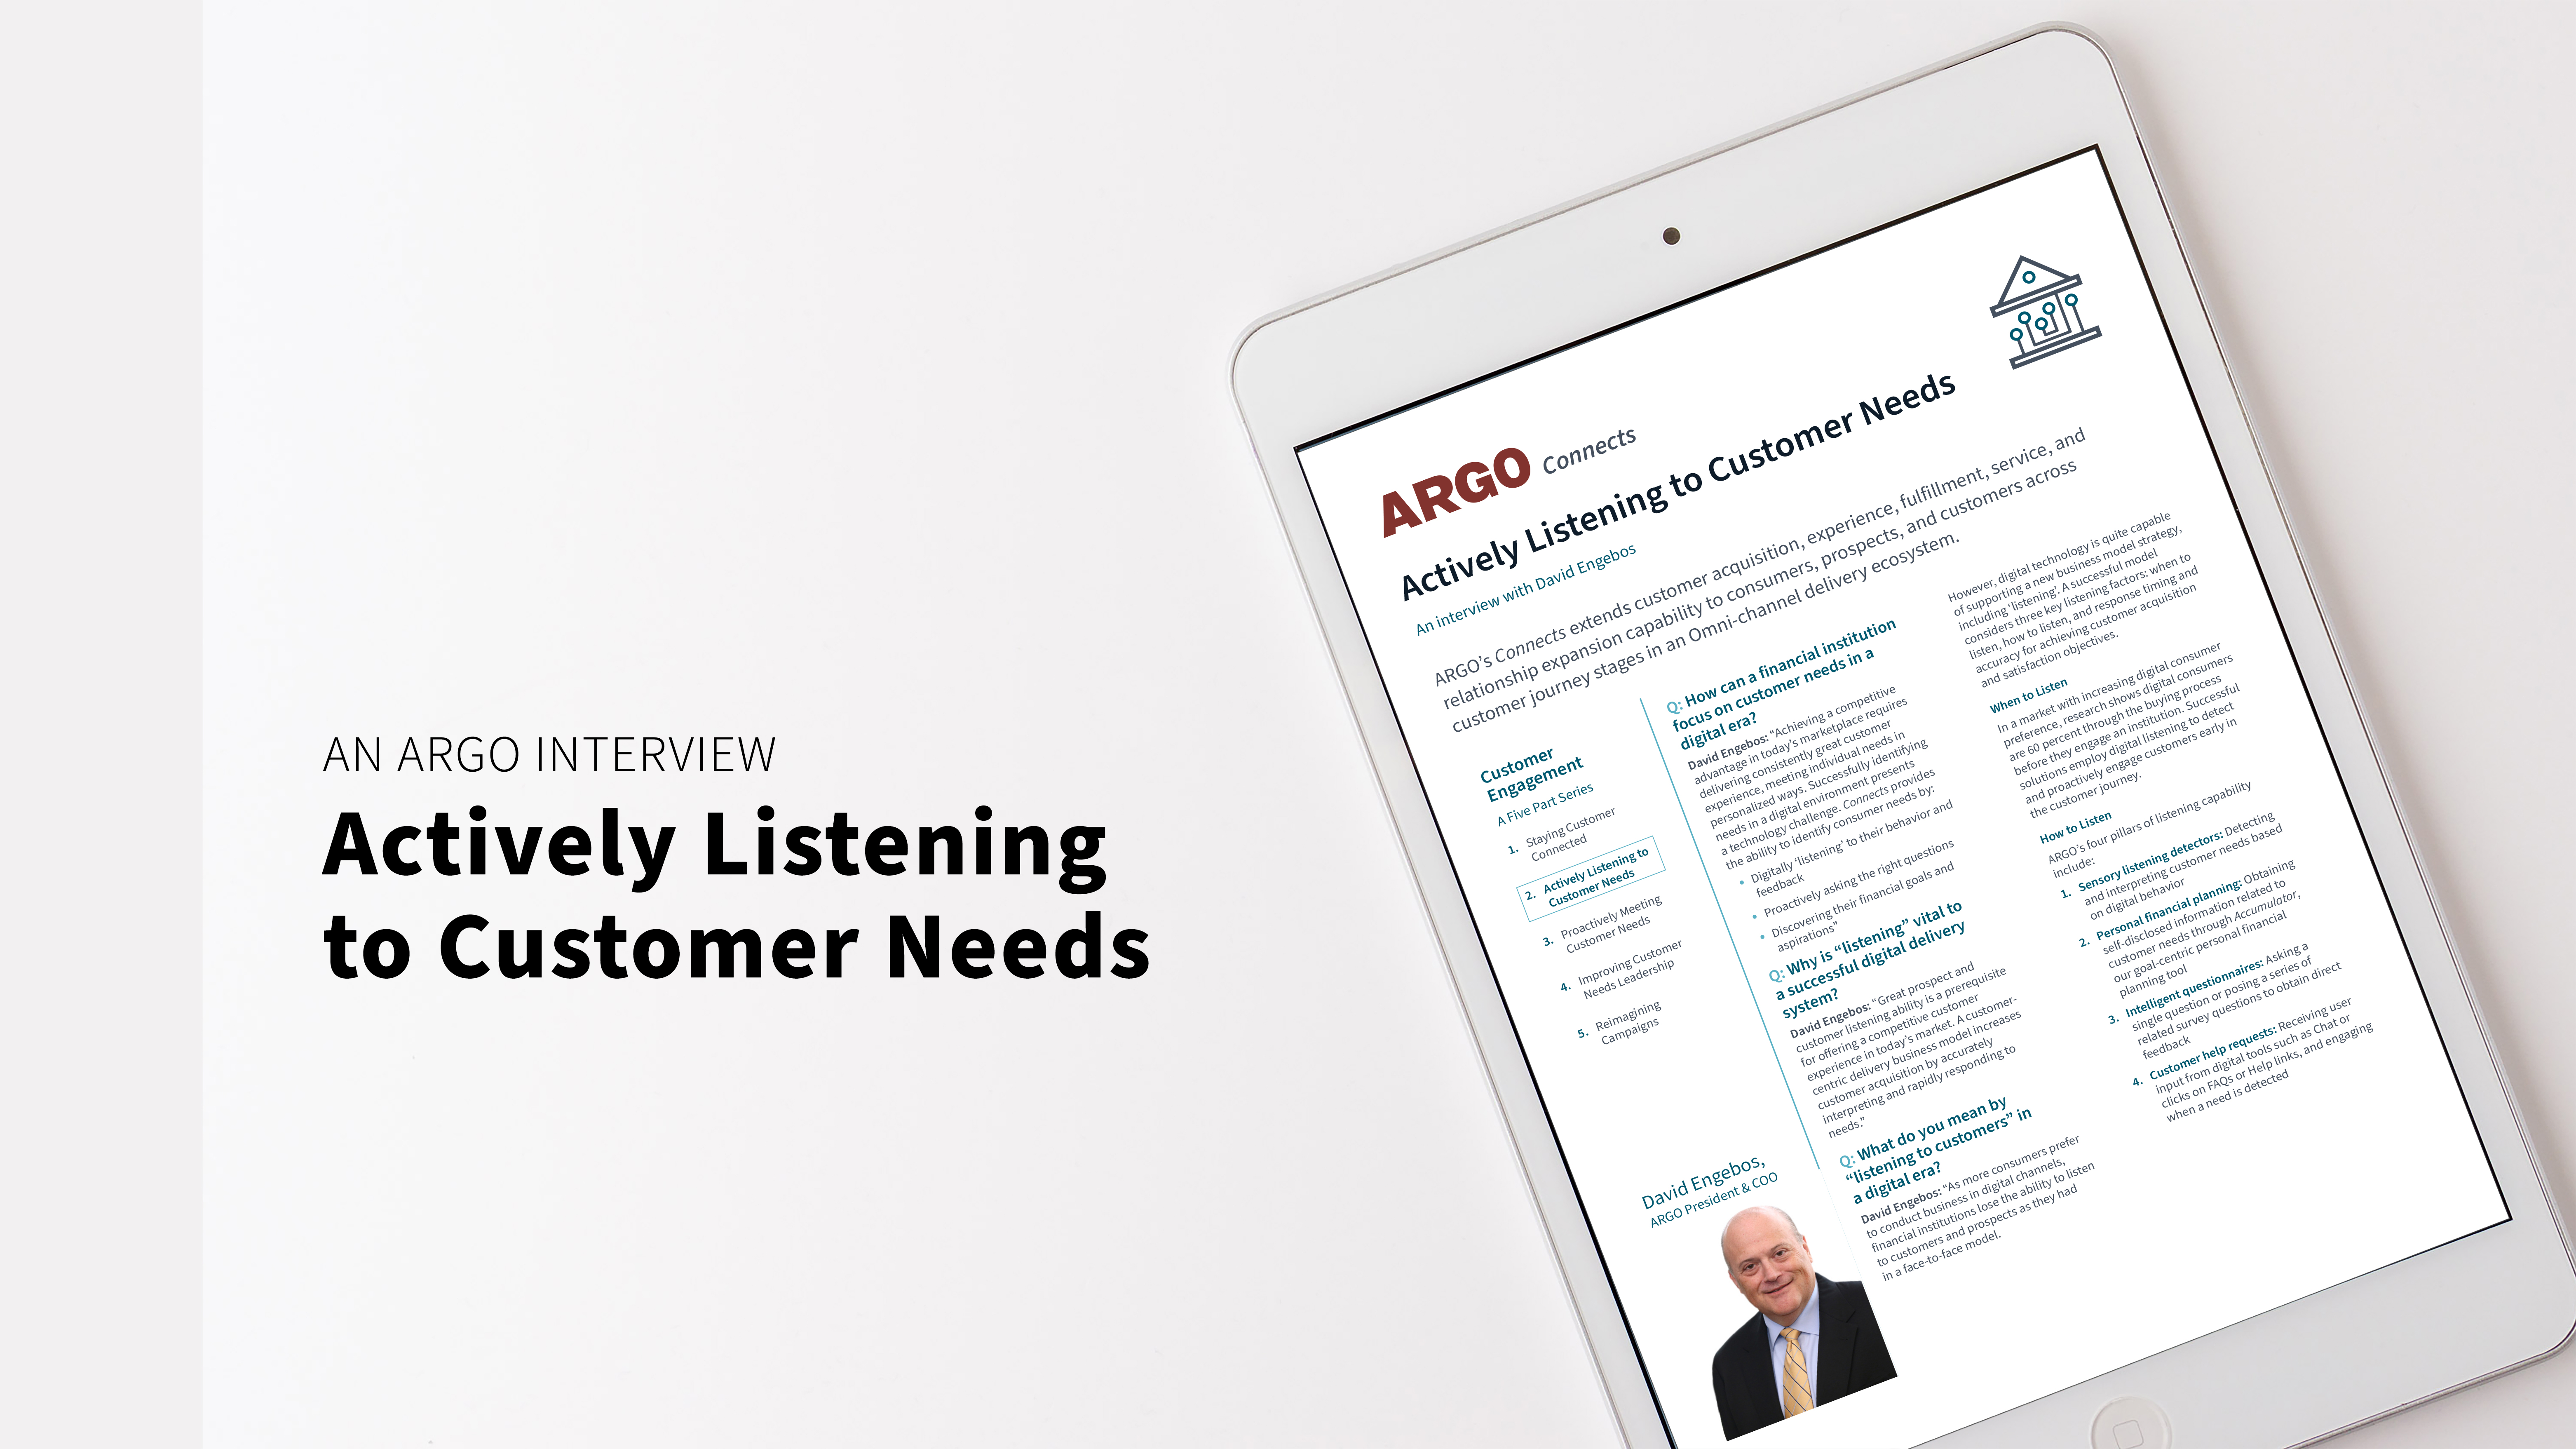 Actively Listening to Customer Needs